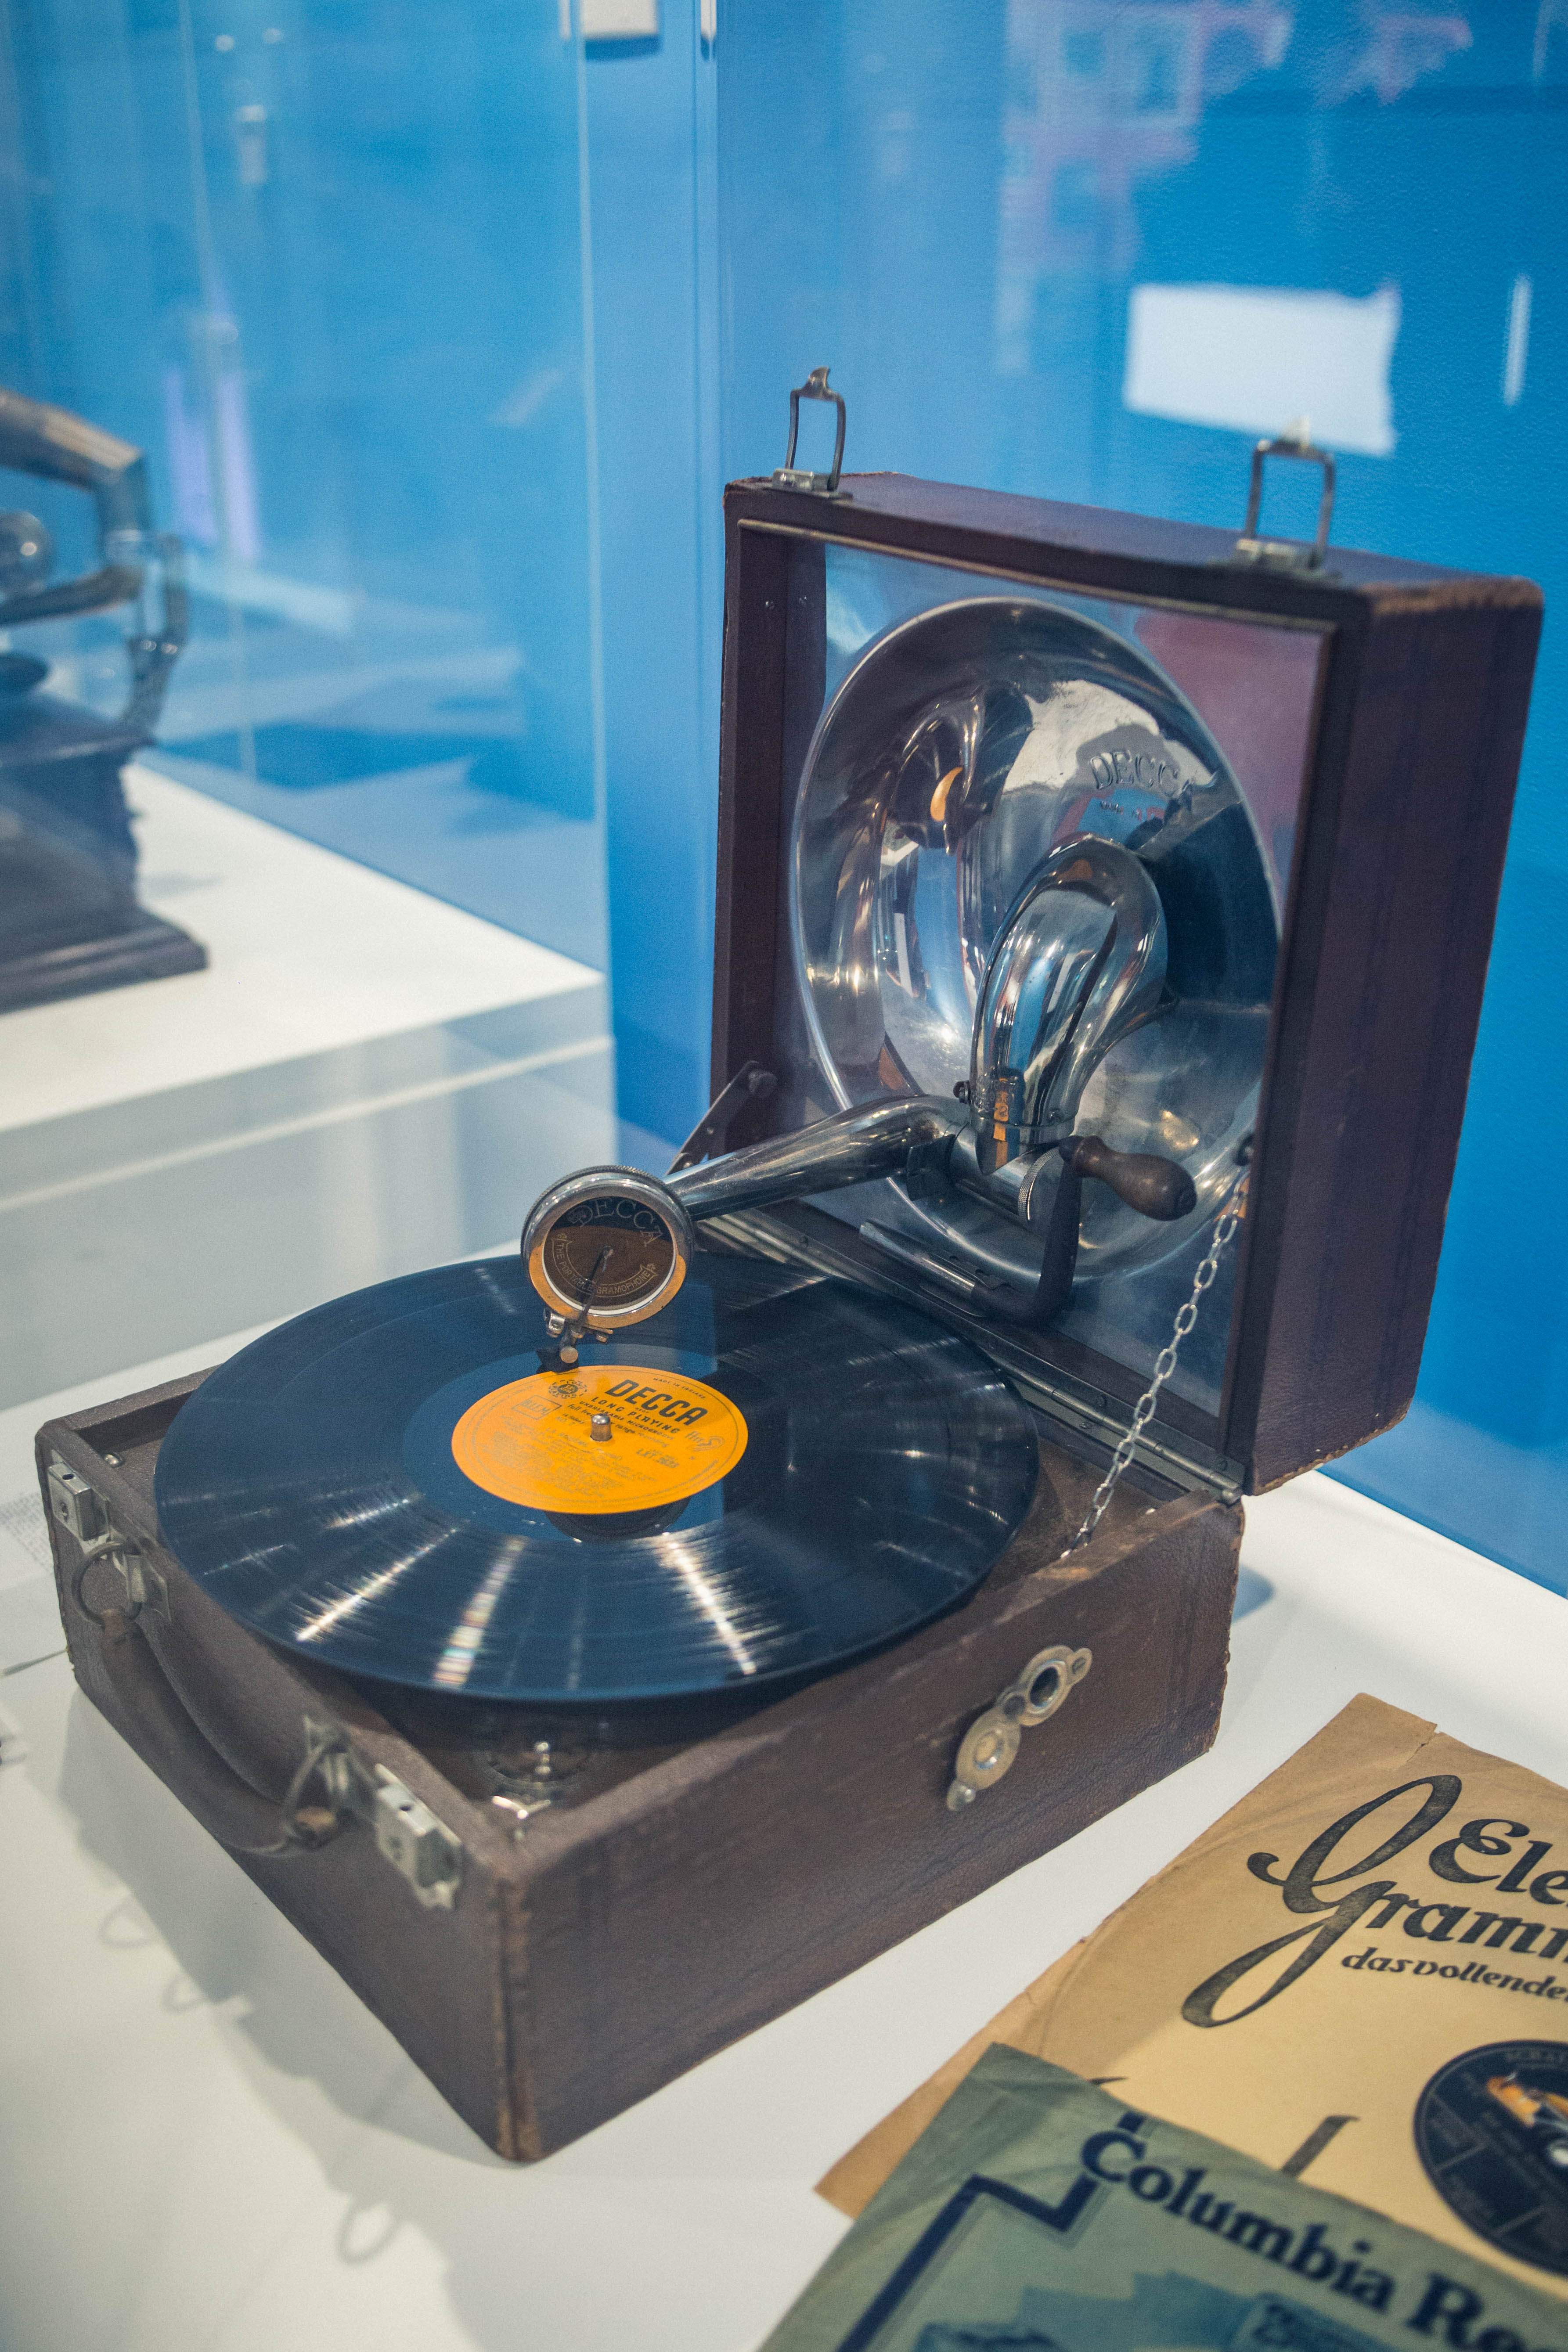 Decca gramophone patented by the Samuels family, London, England c 1921